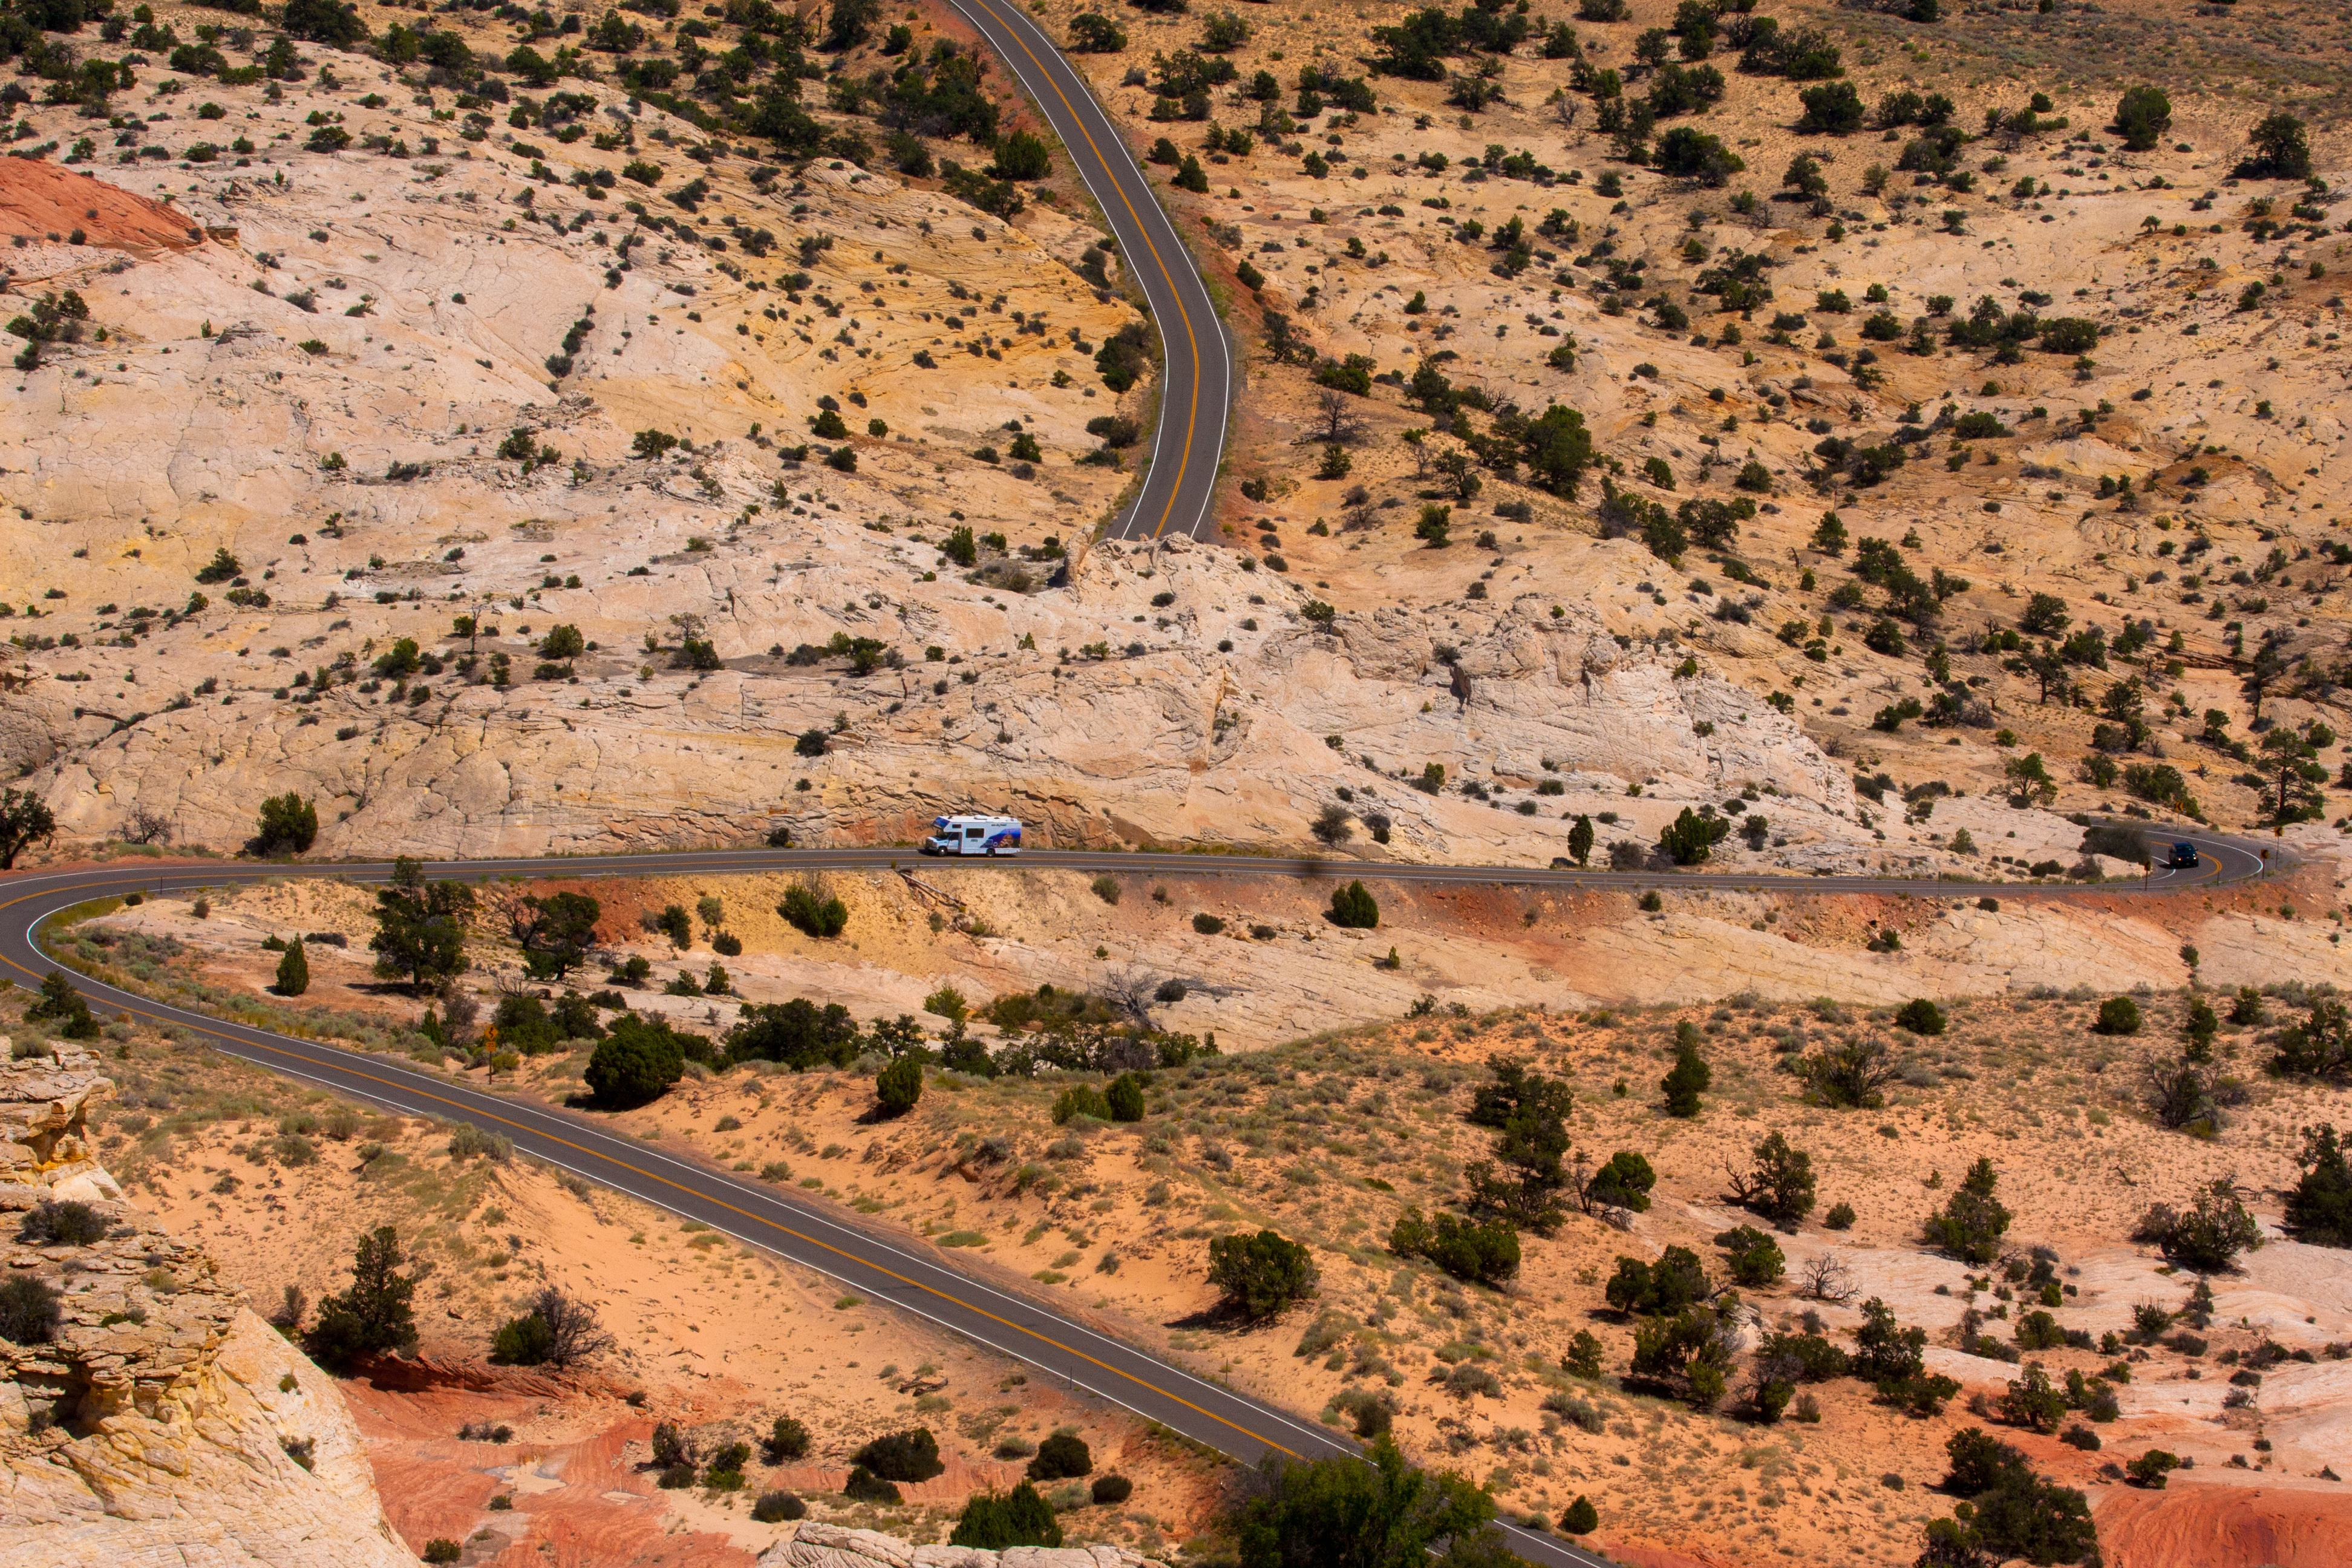 Utah State Route 12, A Journey Through Time Scenic Byway